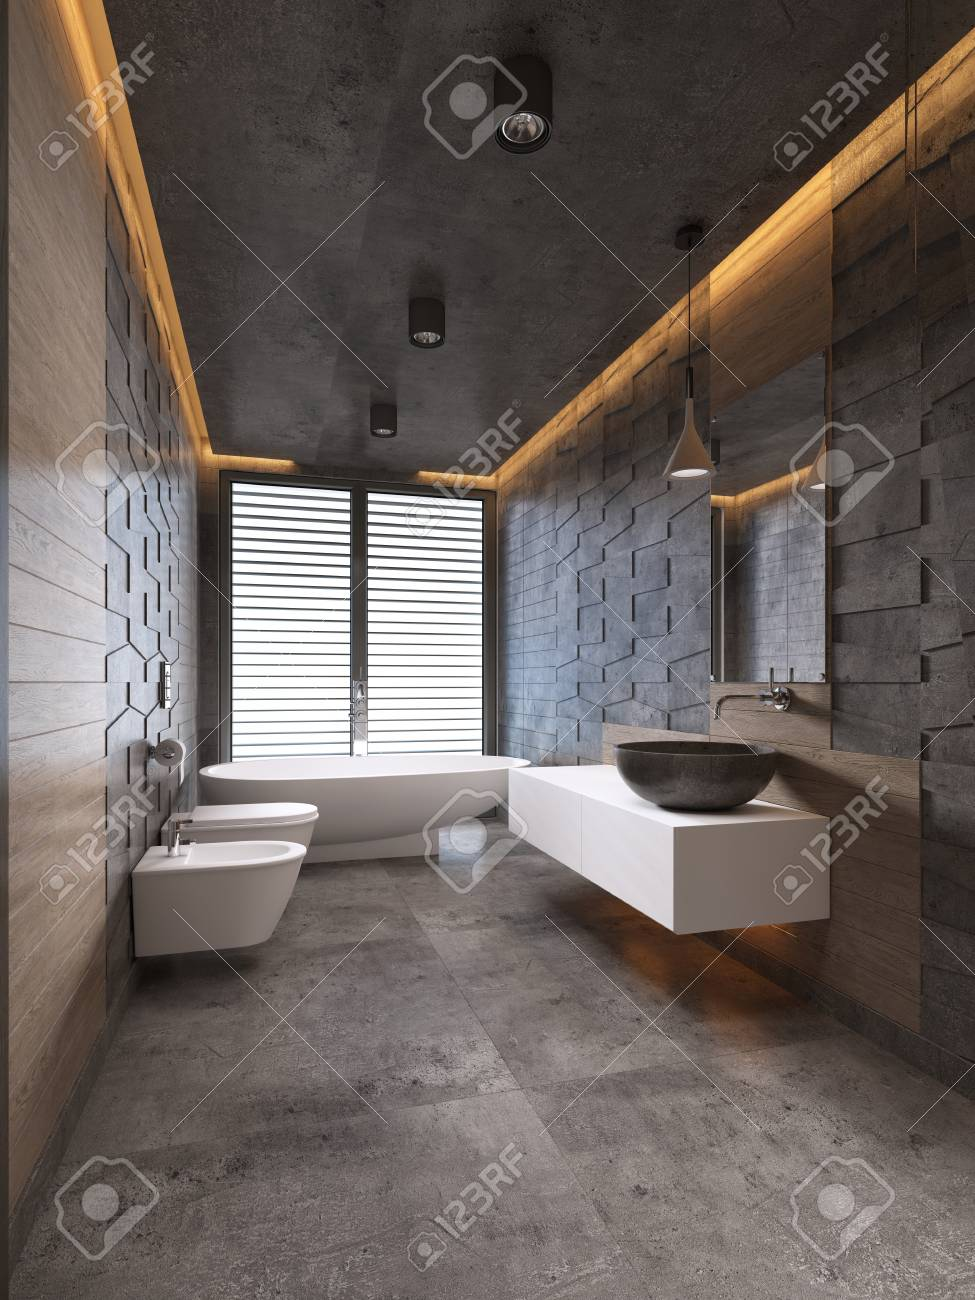 Contemporary Bathroom In Dark Tones With Ceiling Lighting 3d Stock Photo Picture And Royalty Free Image Image 113305103